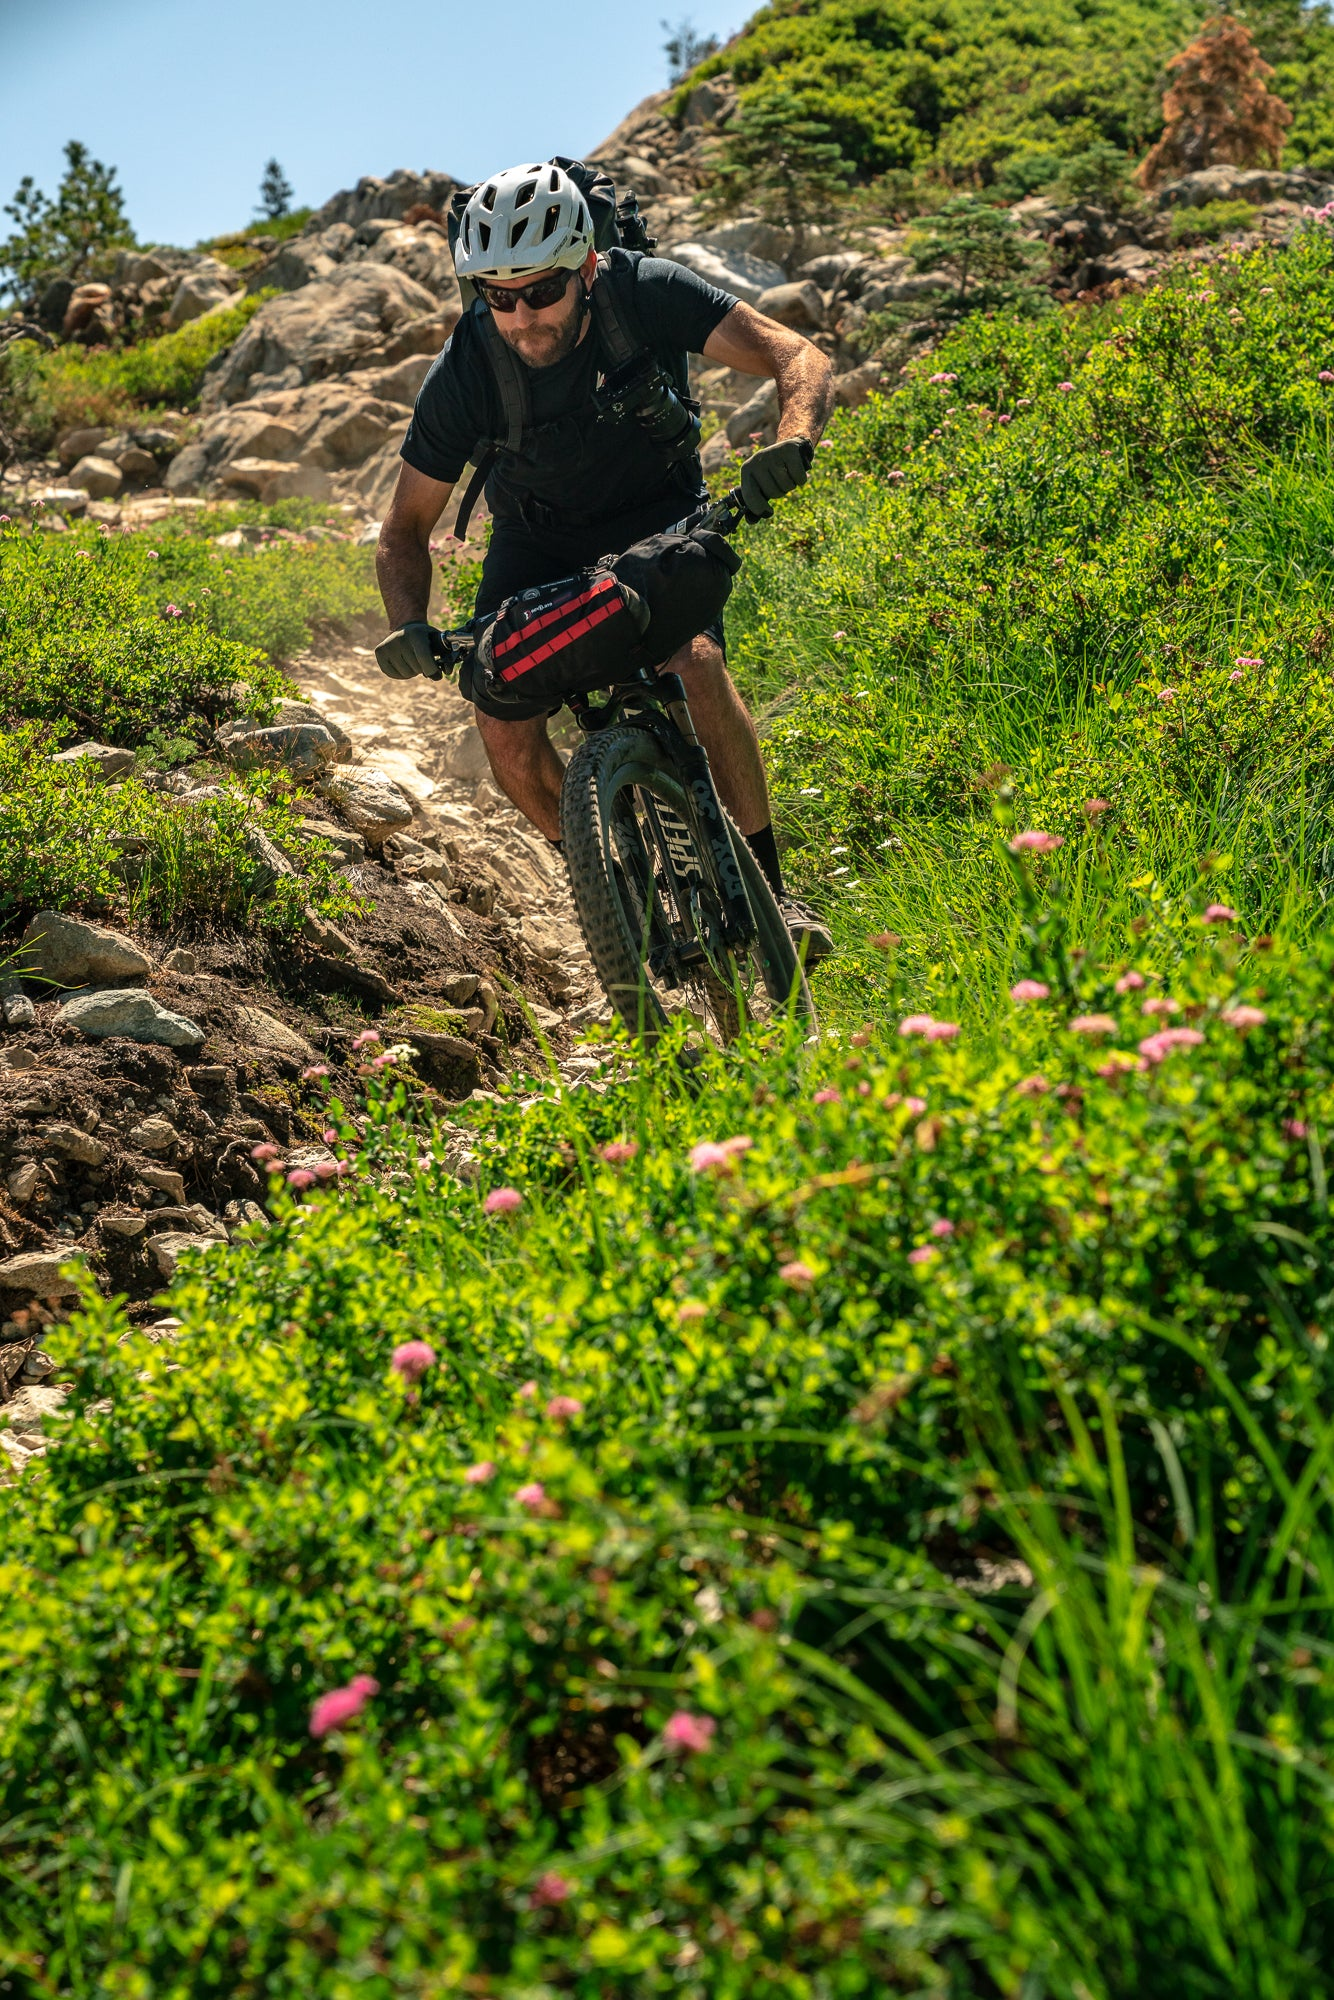 Jason Fitzgibbon Riding a Mountain Bike in the Lost Sierra Mountains